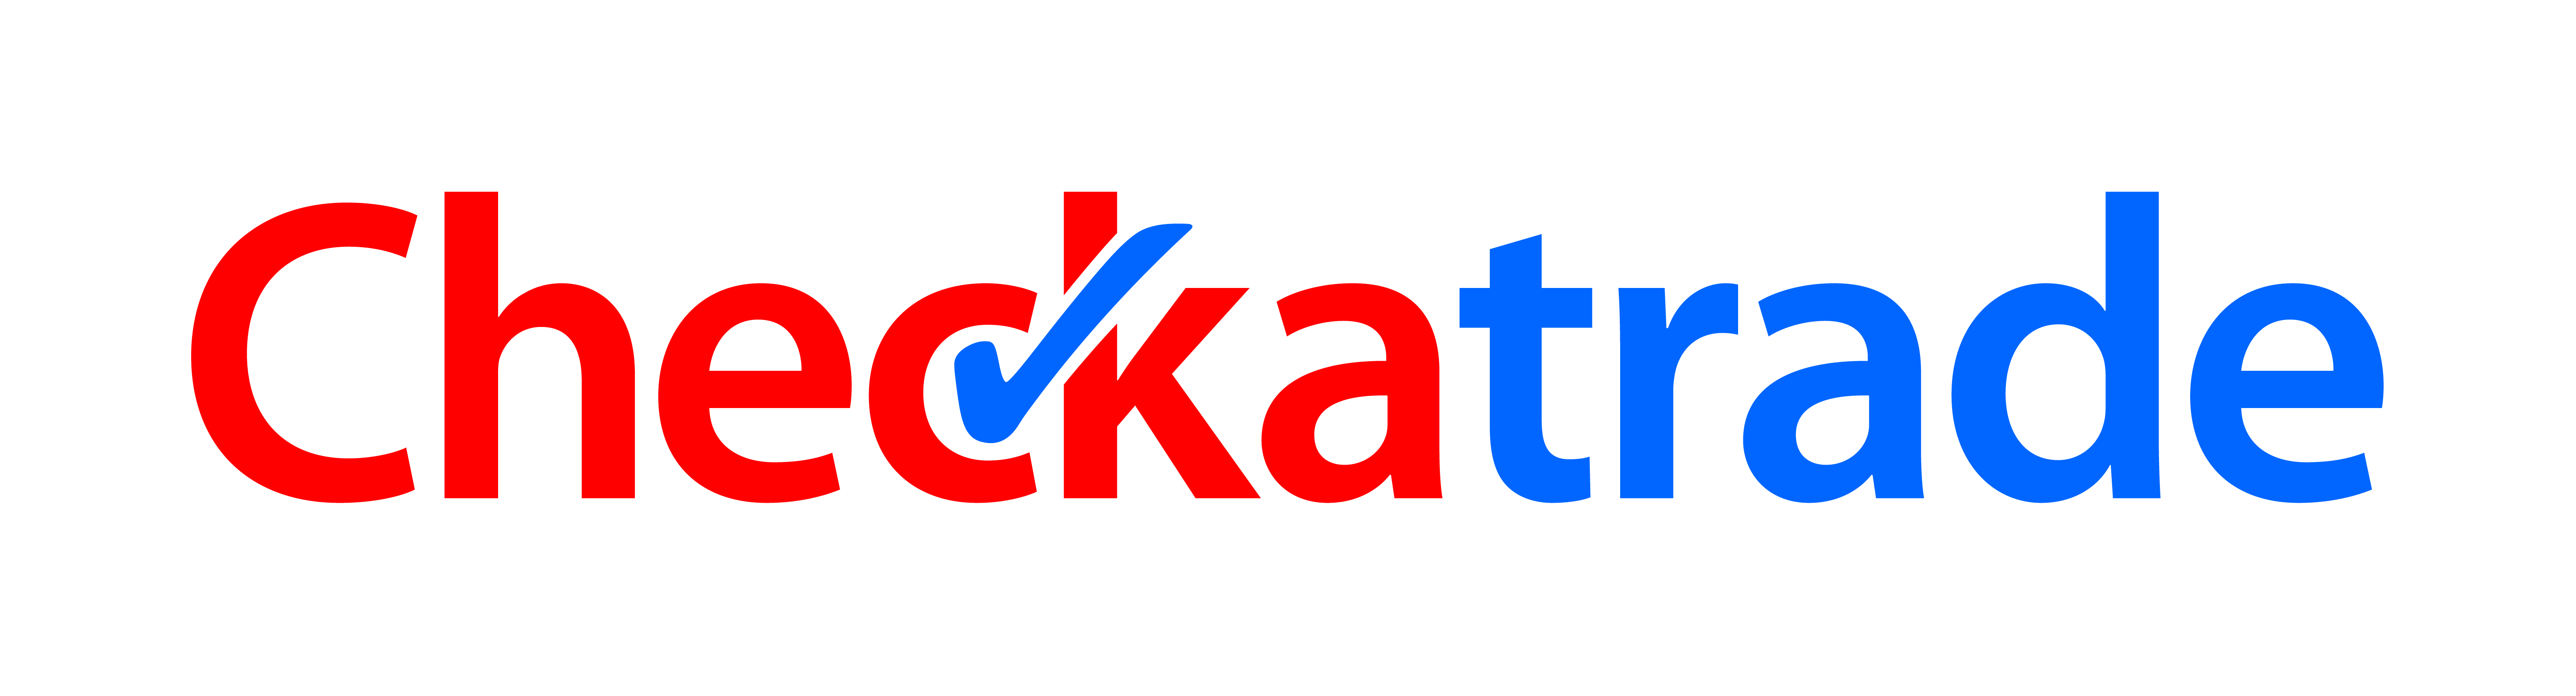 checkatrade-no-strapline